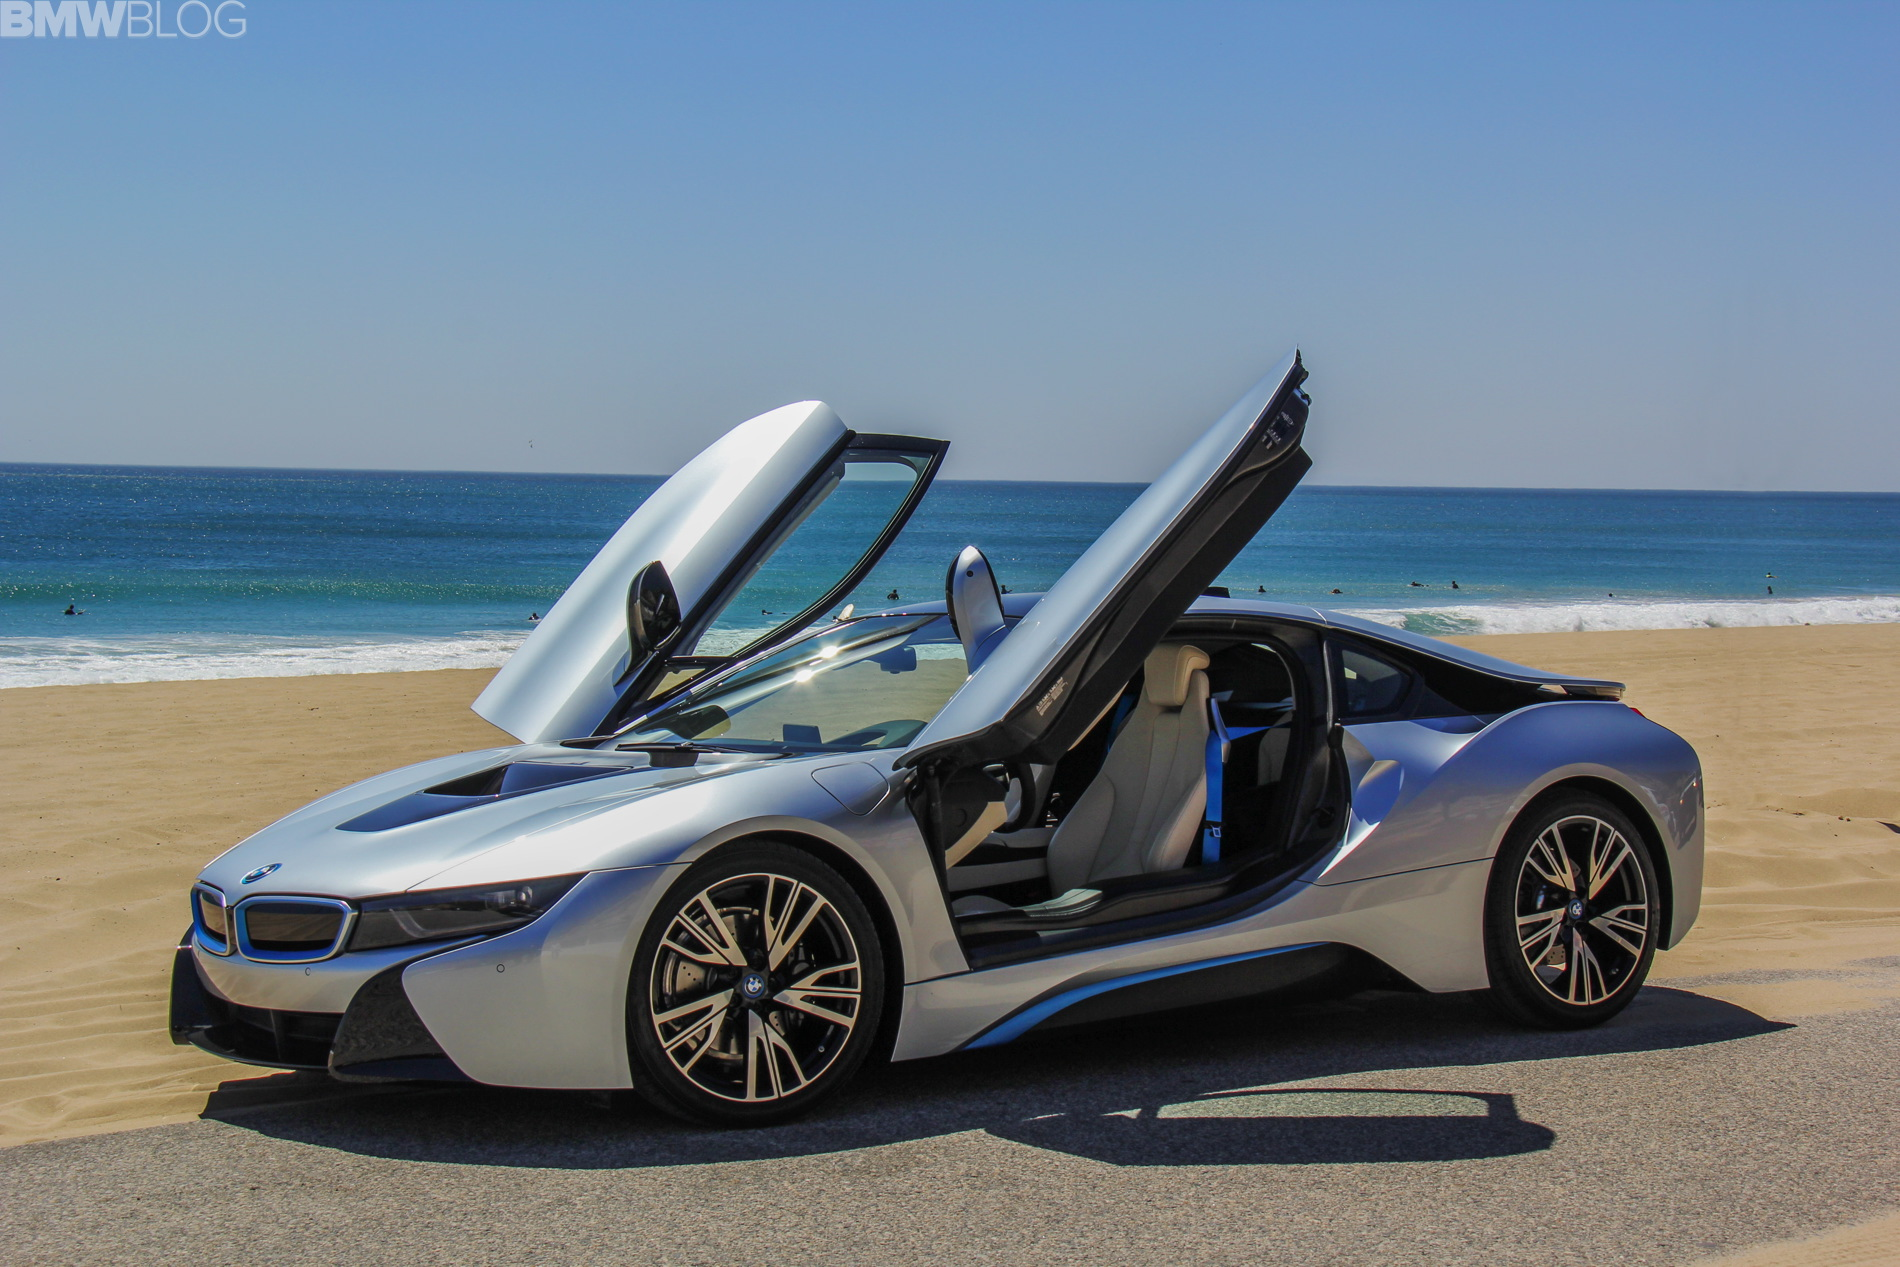 2017 Bmw I8 Drive Review 06 750x500